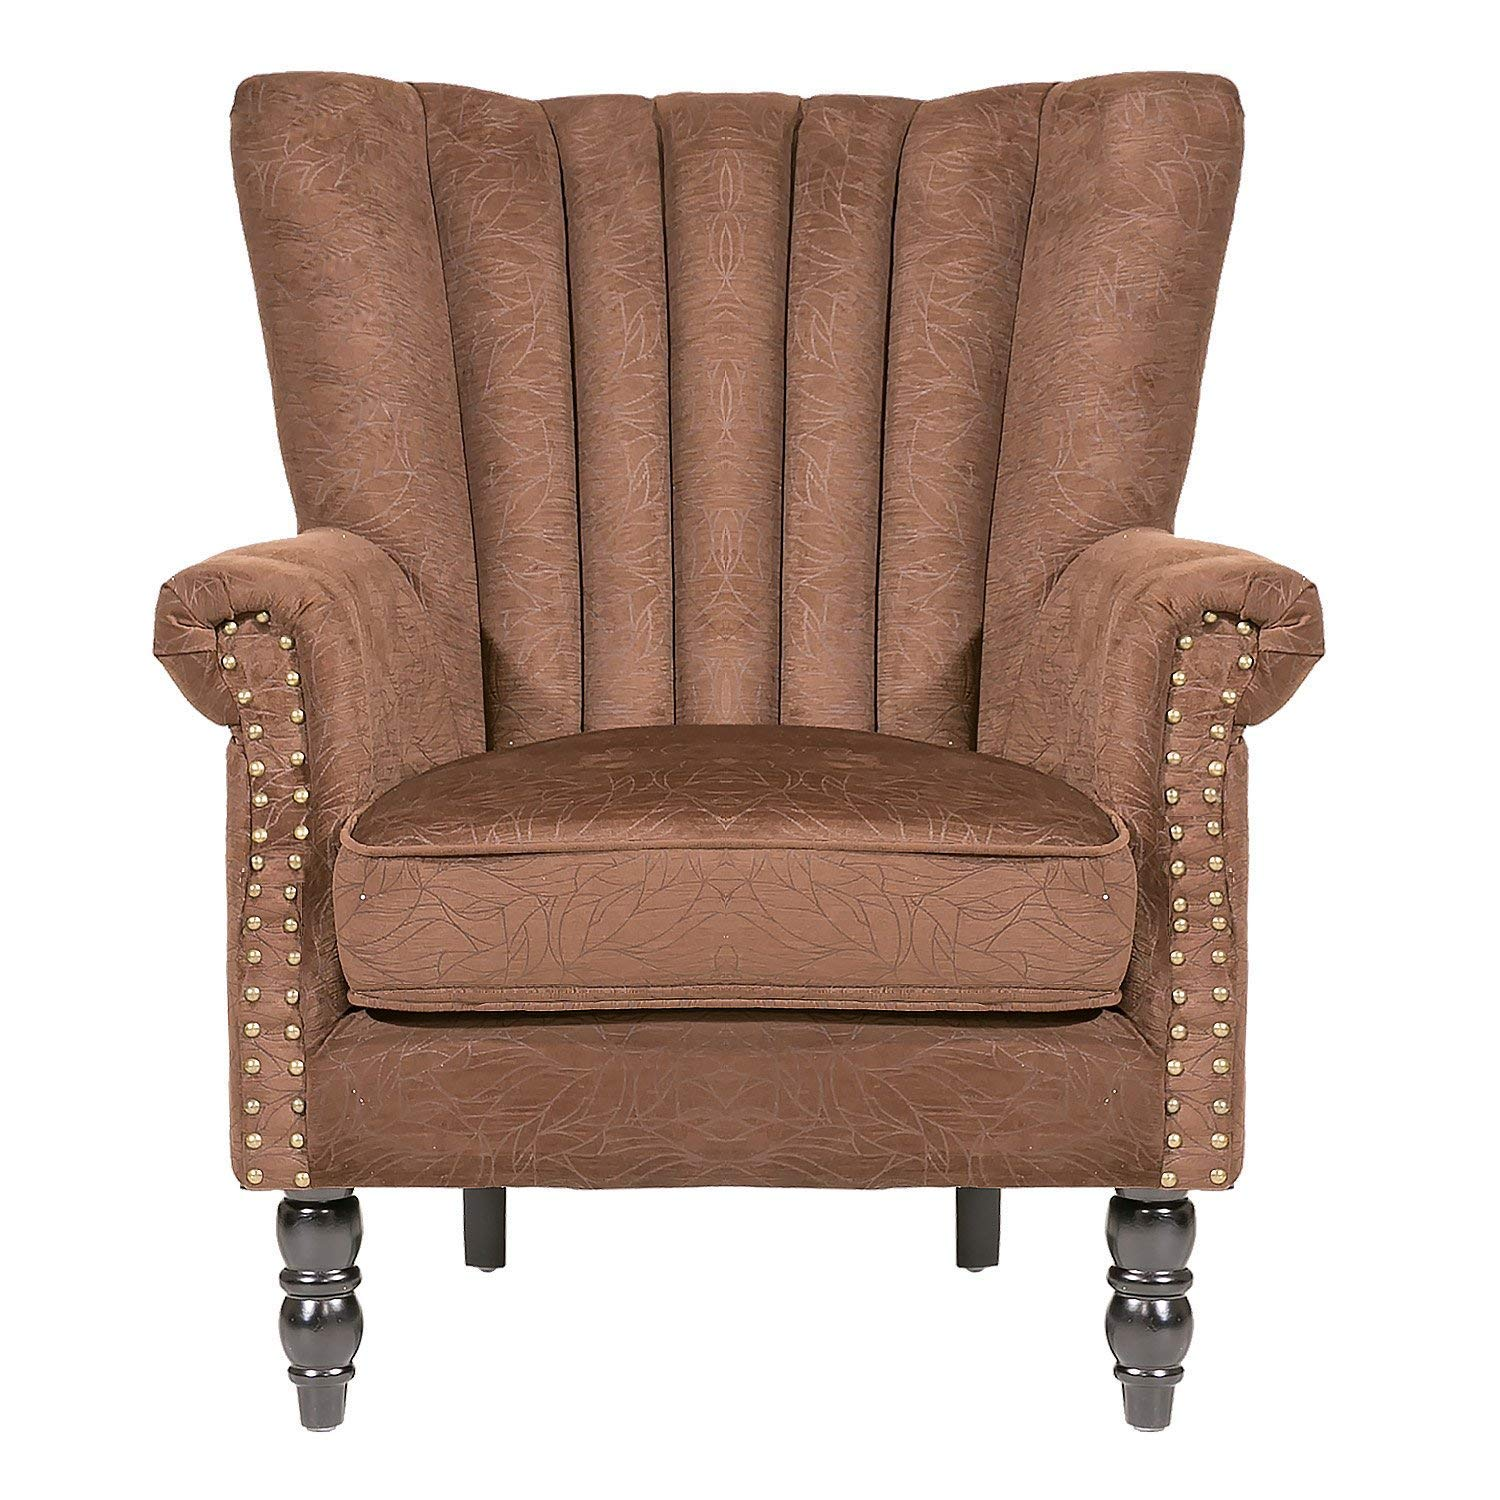 Amazon com furniture accent chairupholstered arm chairs with suede fabric and wooden legs for living roombrown kitchen dining